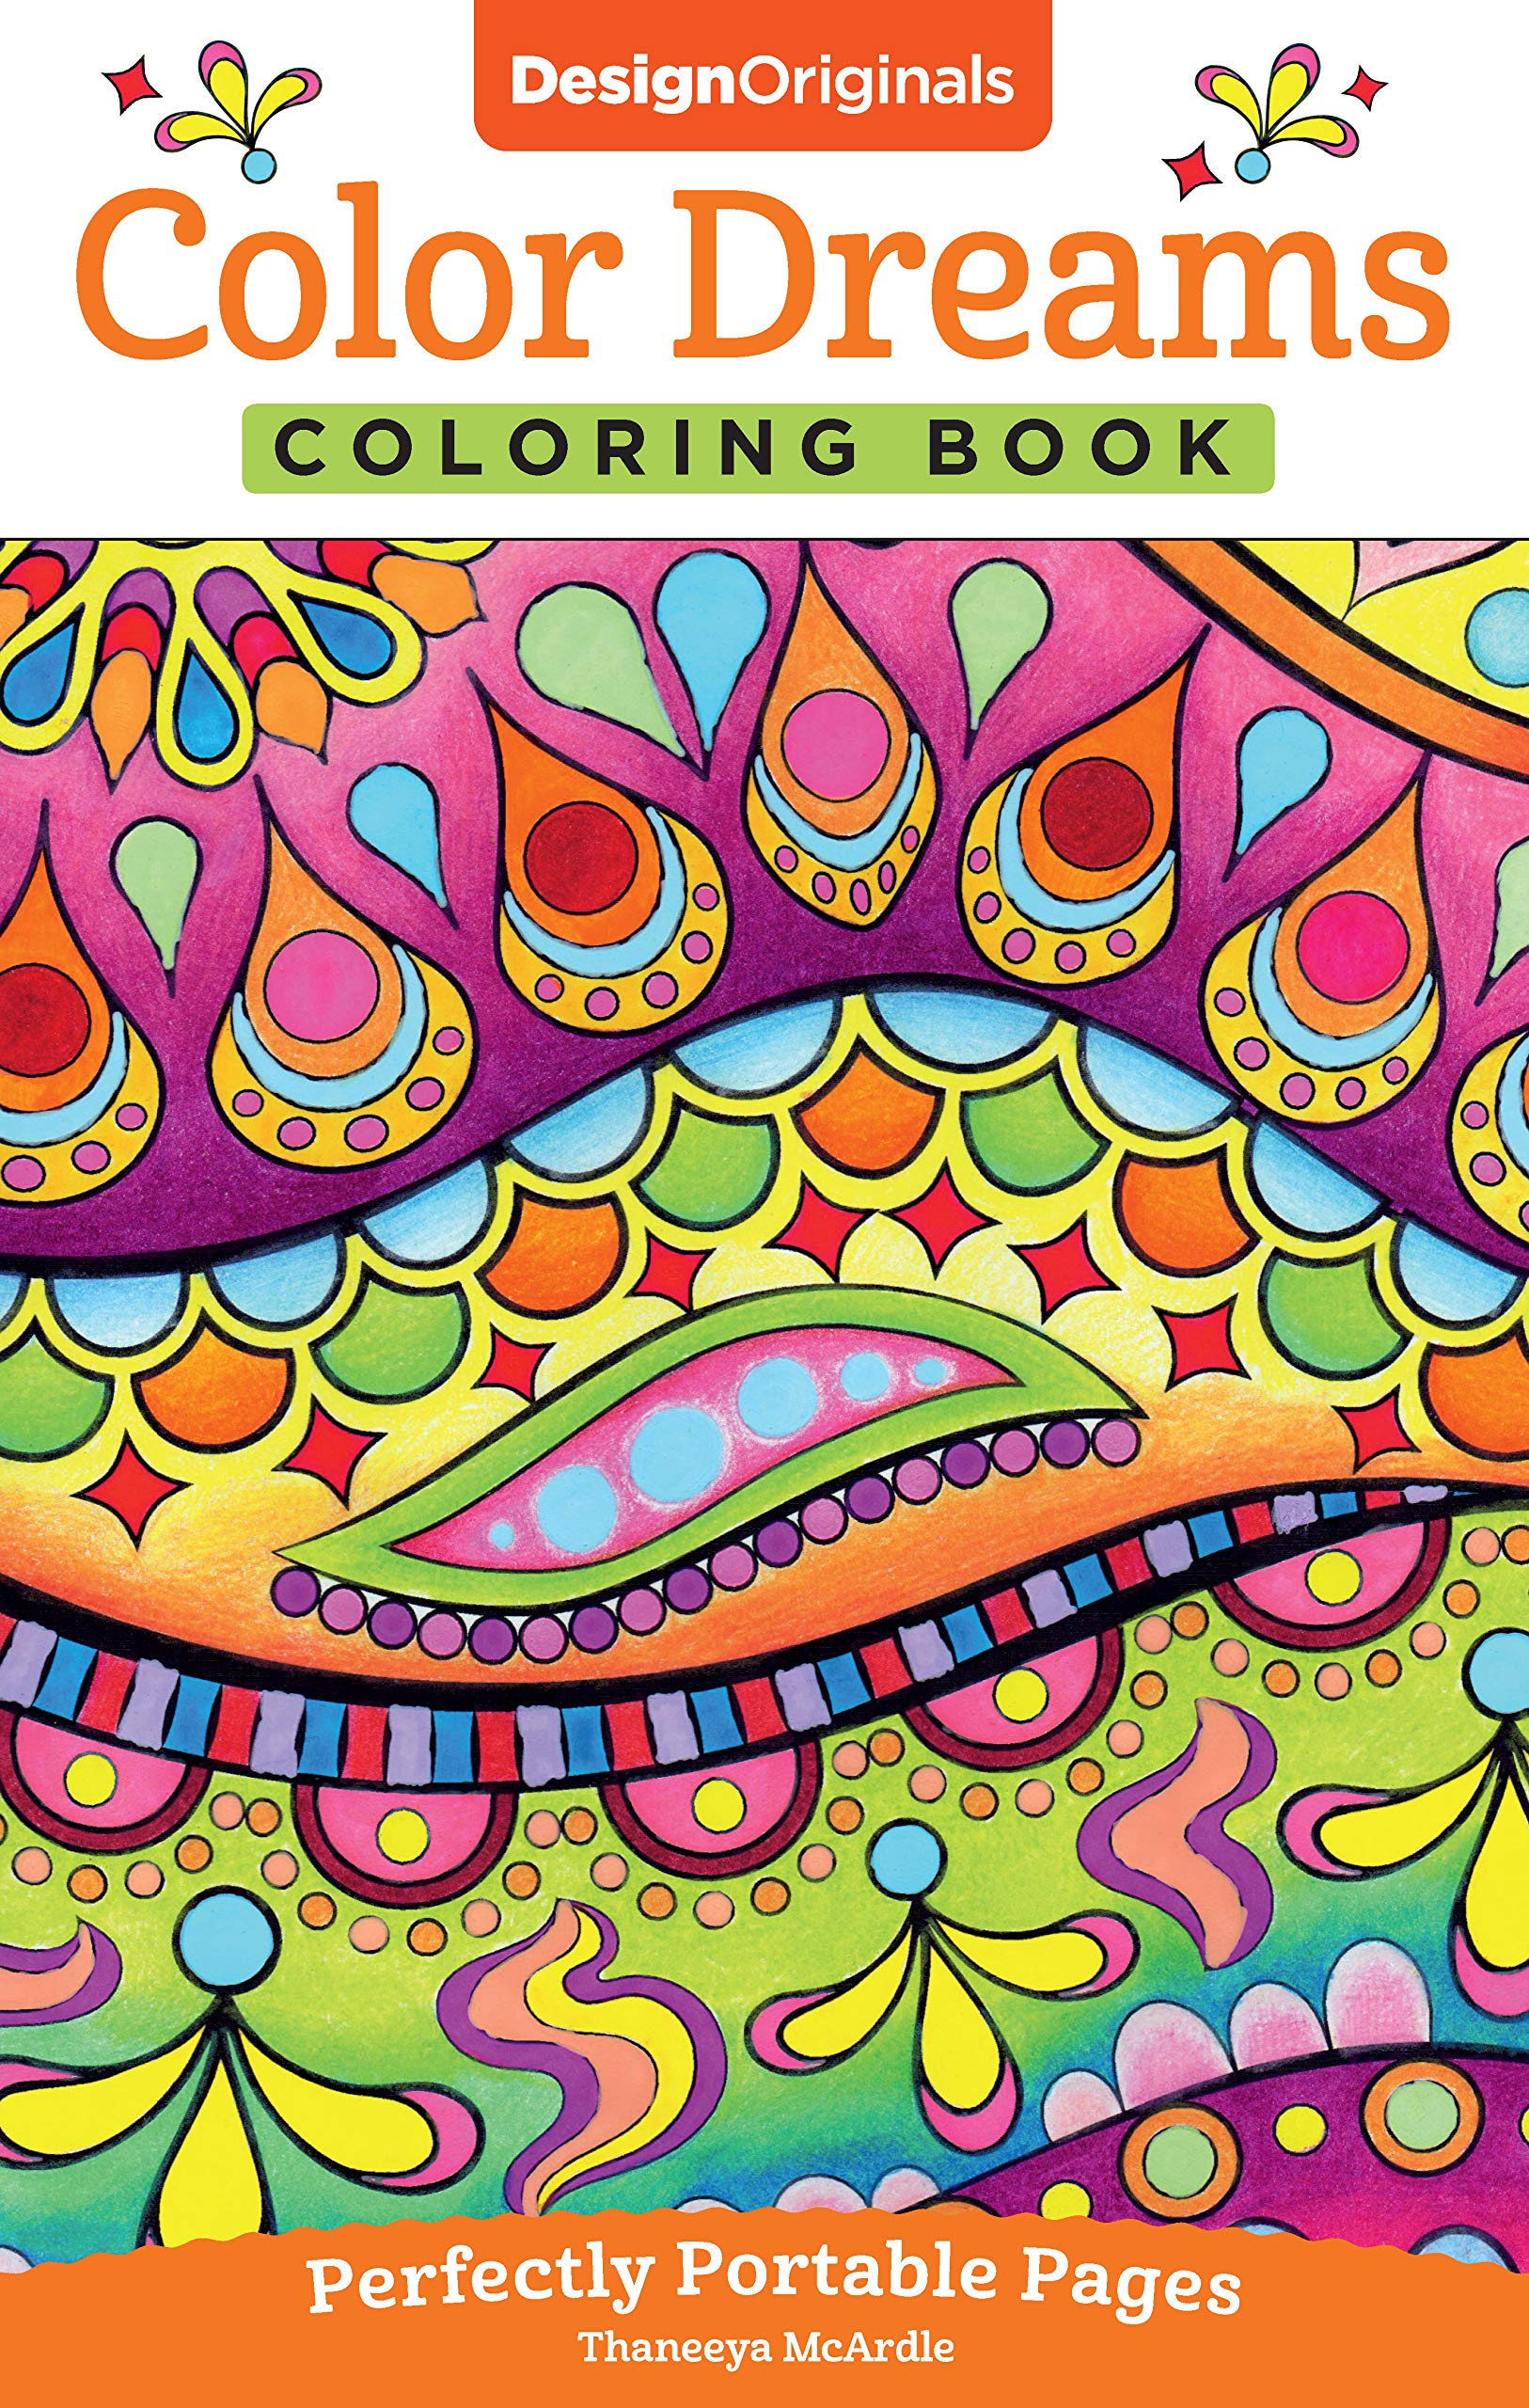 - Amazon.com: Color Dreams Coloring Book: Perfectly Portable Pages